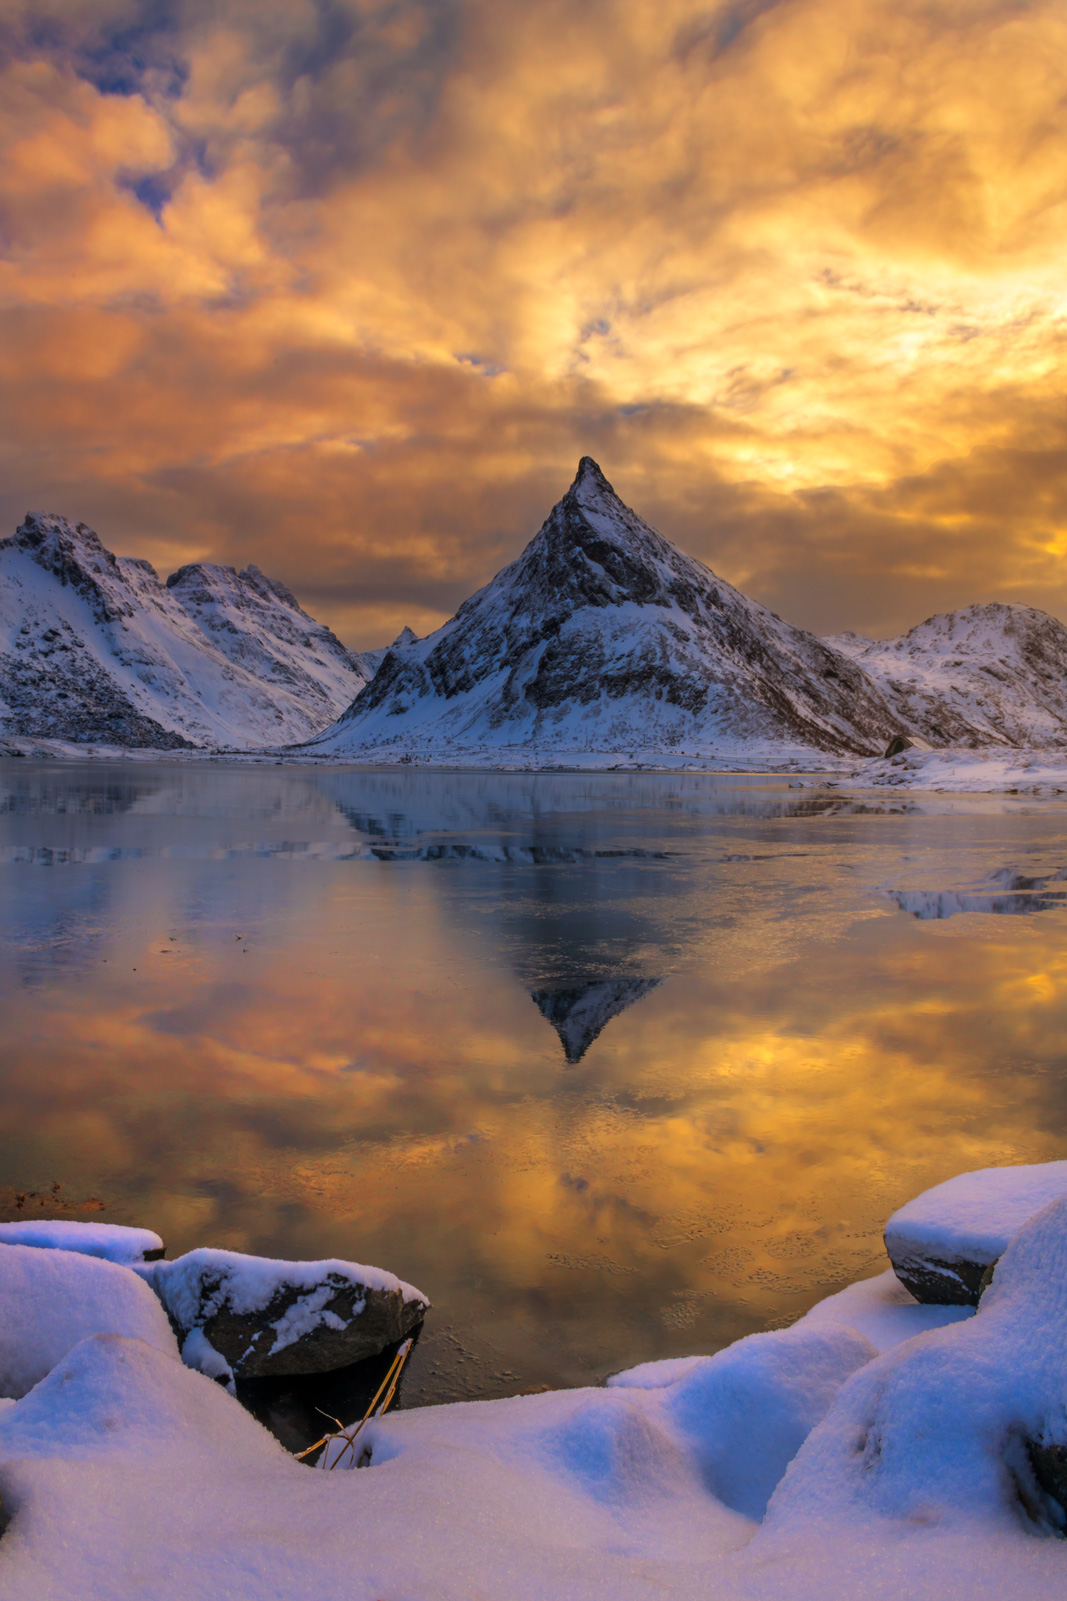 Norway, Lofoten, Fredvang, Volundstind, Winter, Reflection, Lake, photo